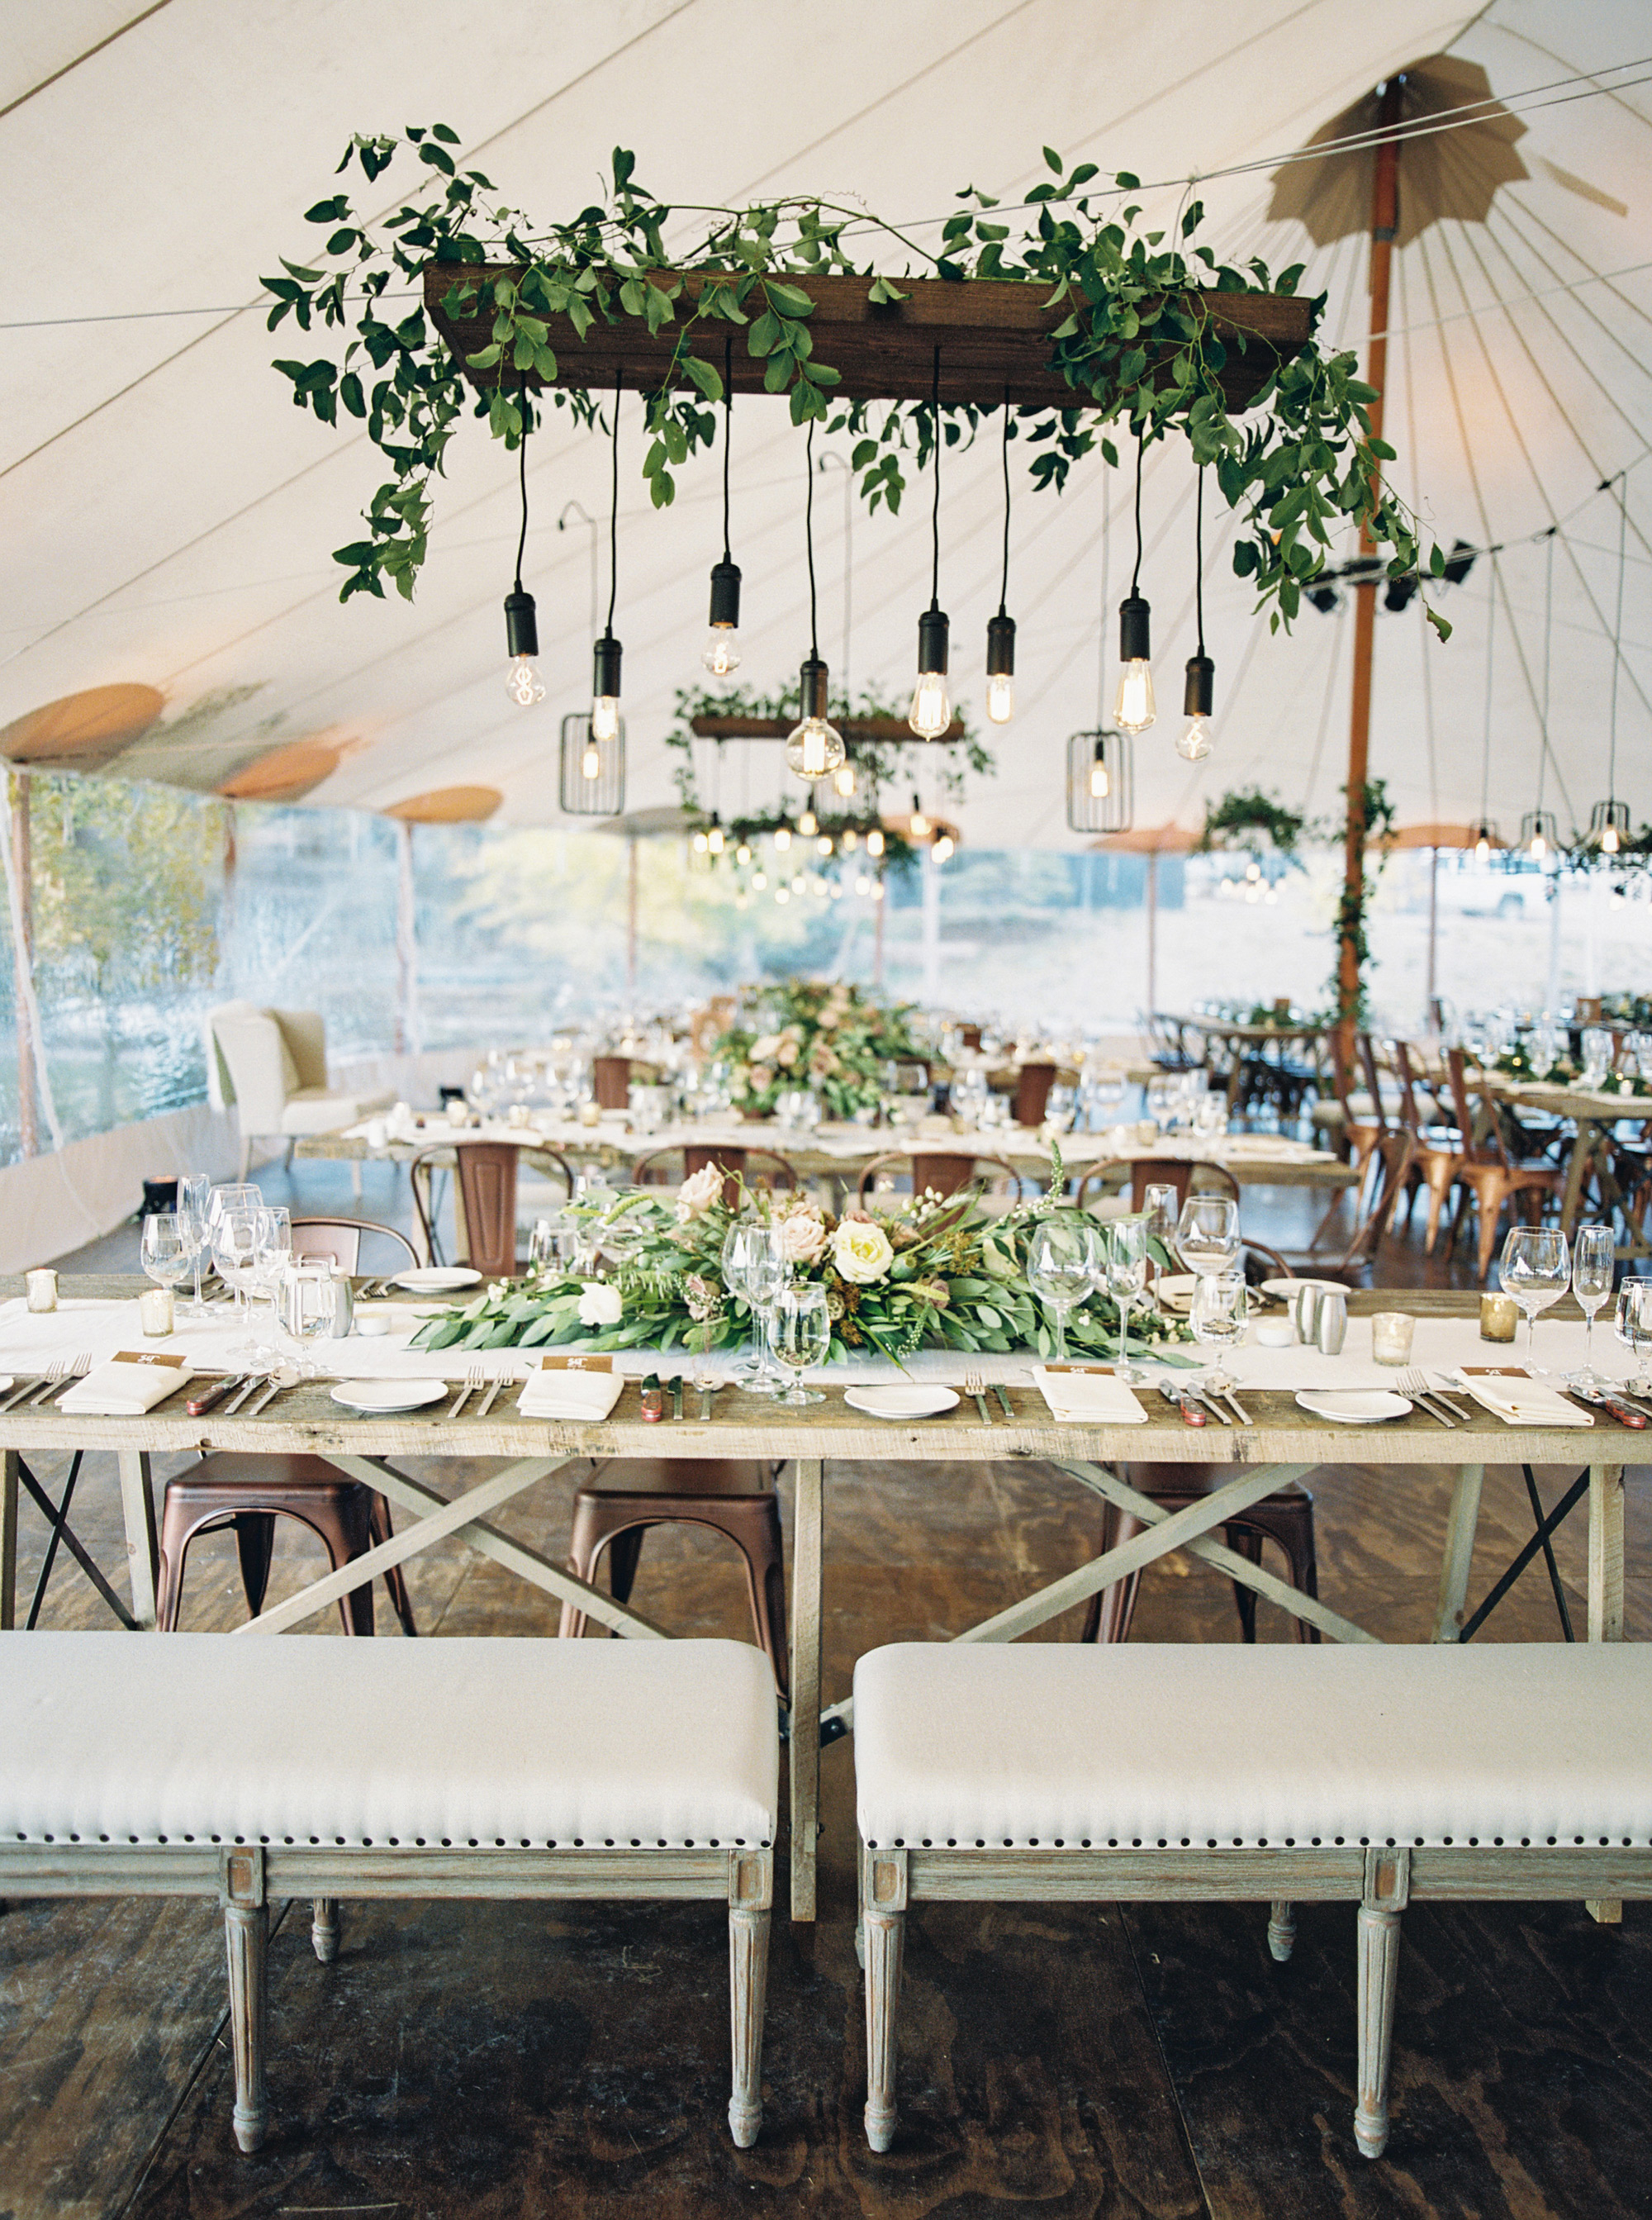 How To Throw The Perfect Backyard Engagement Party Martha for 13 Some of the Coolest Ways How to Upgrade Backyard Engagement Party Decorations